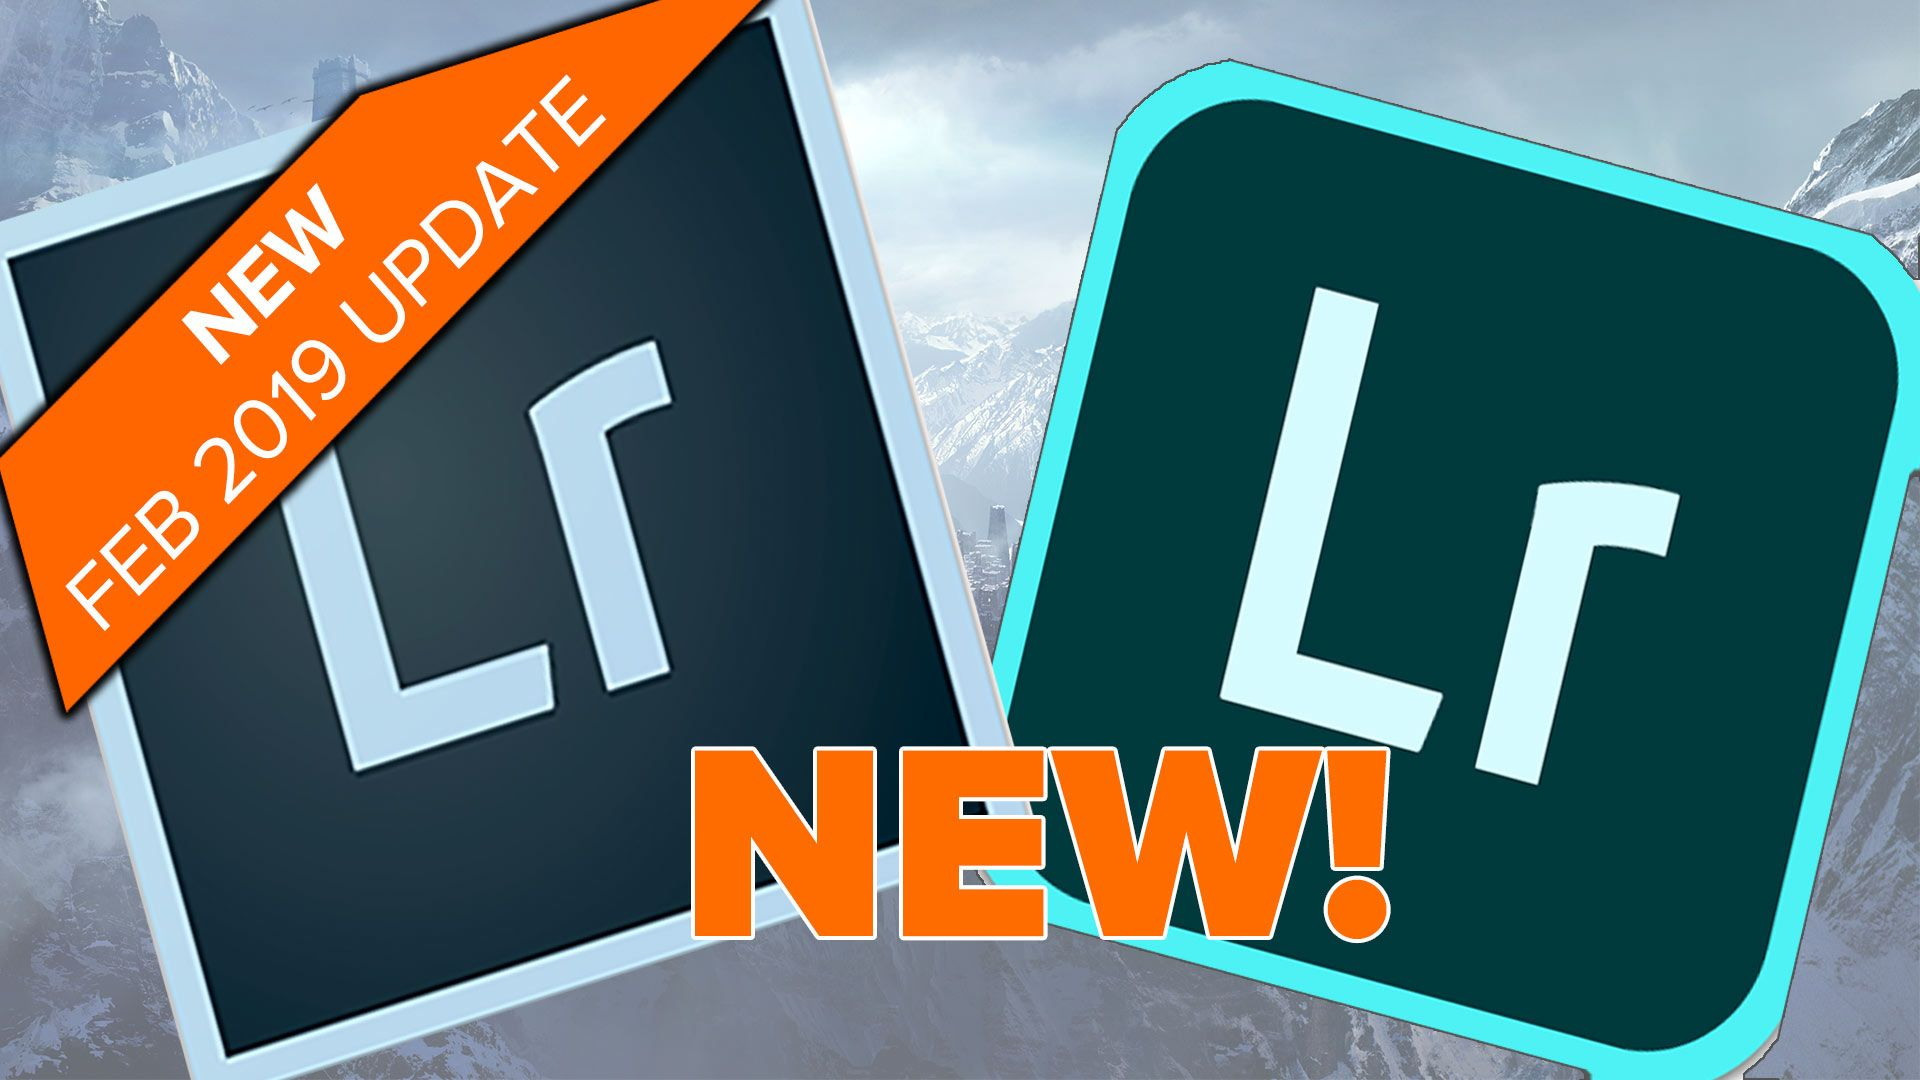 Lightroom cc new features